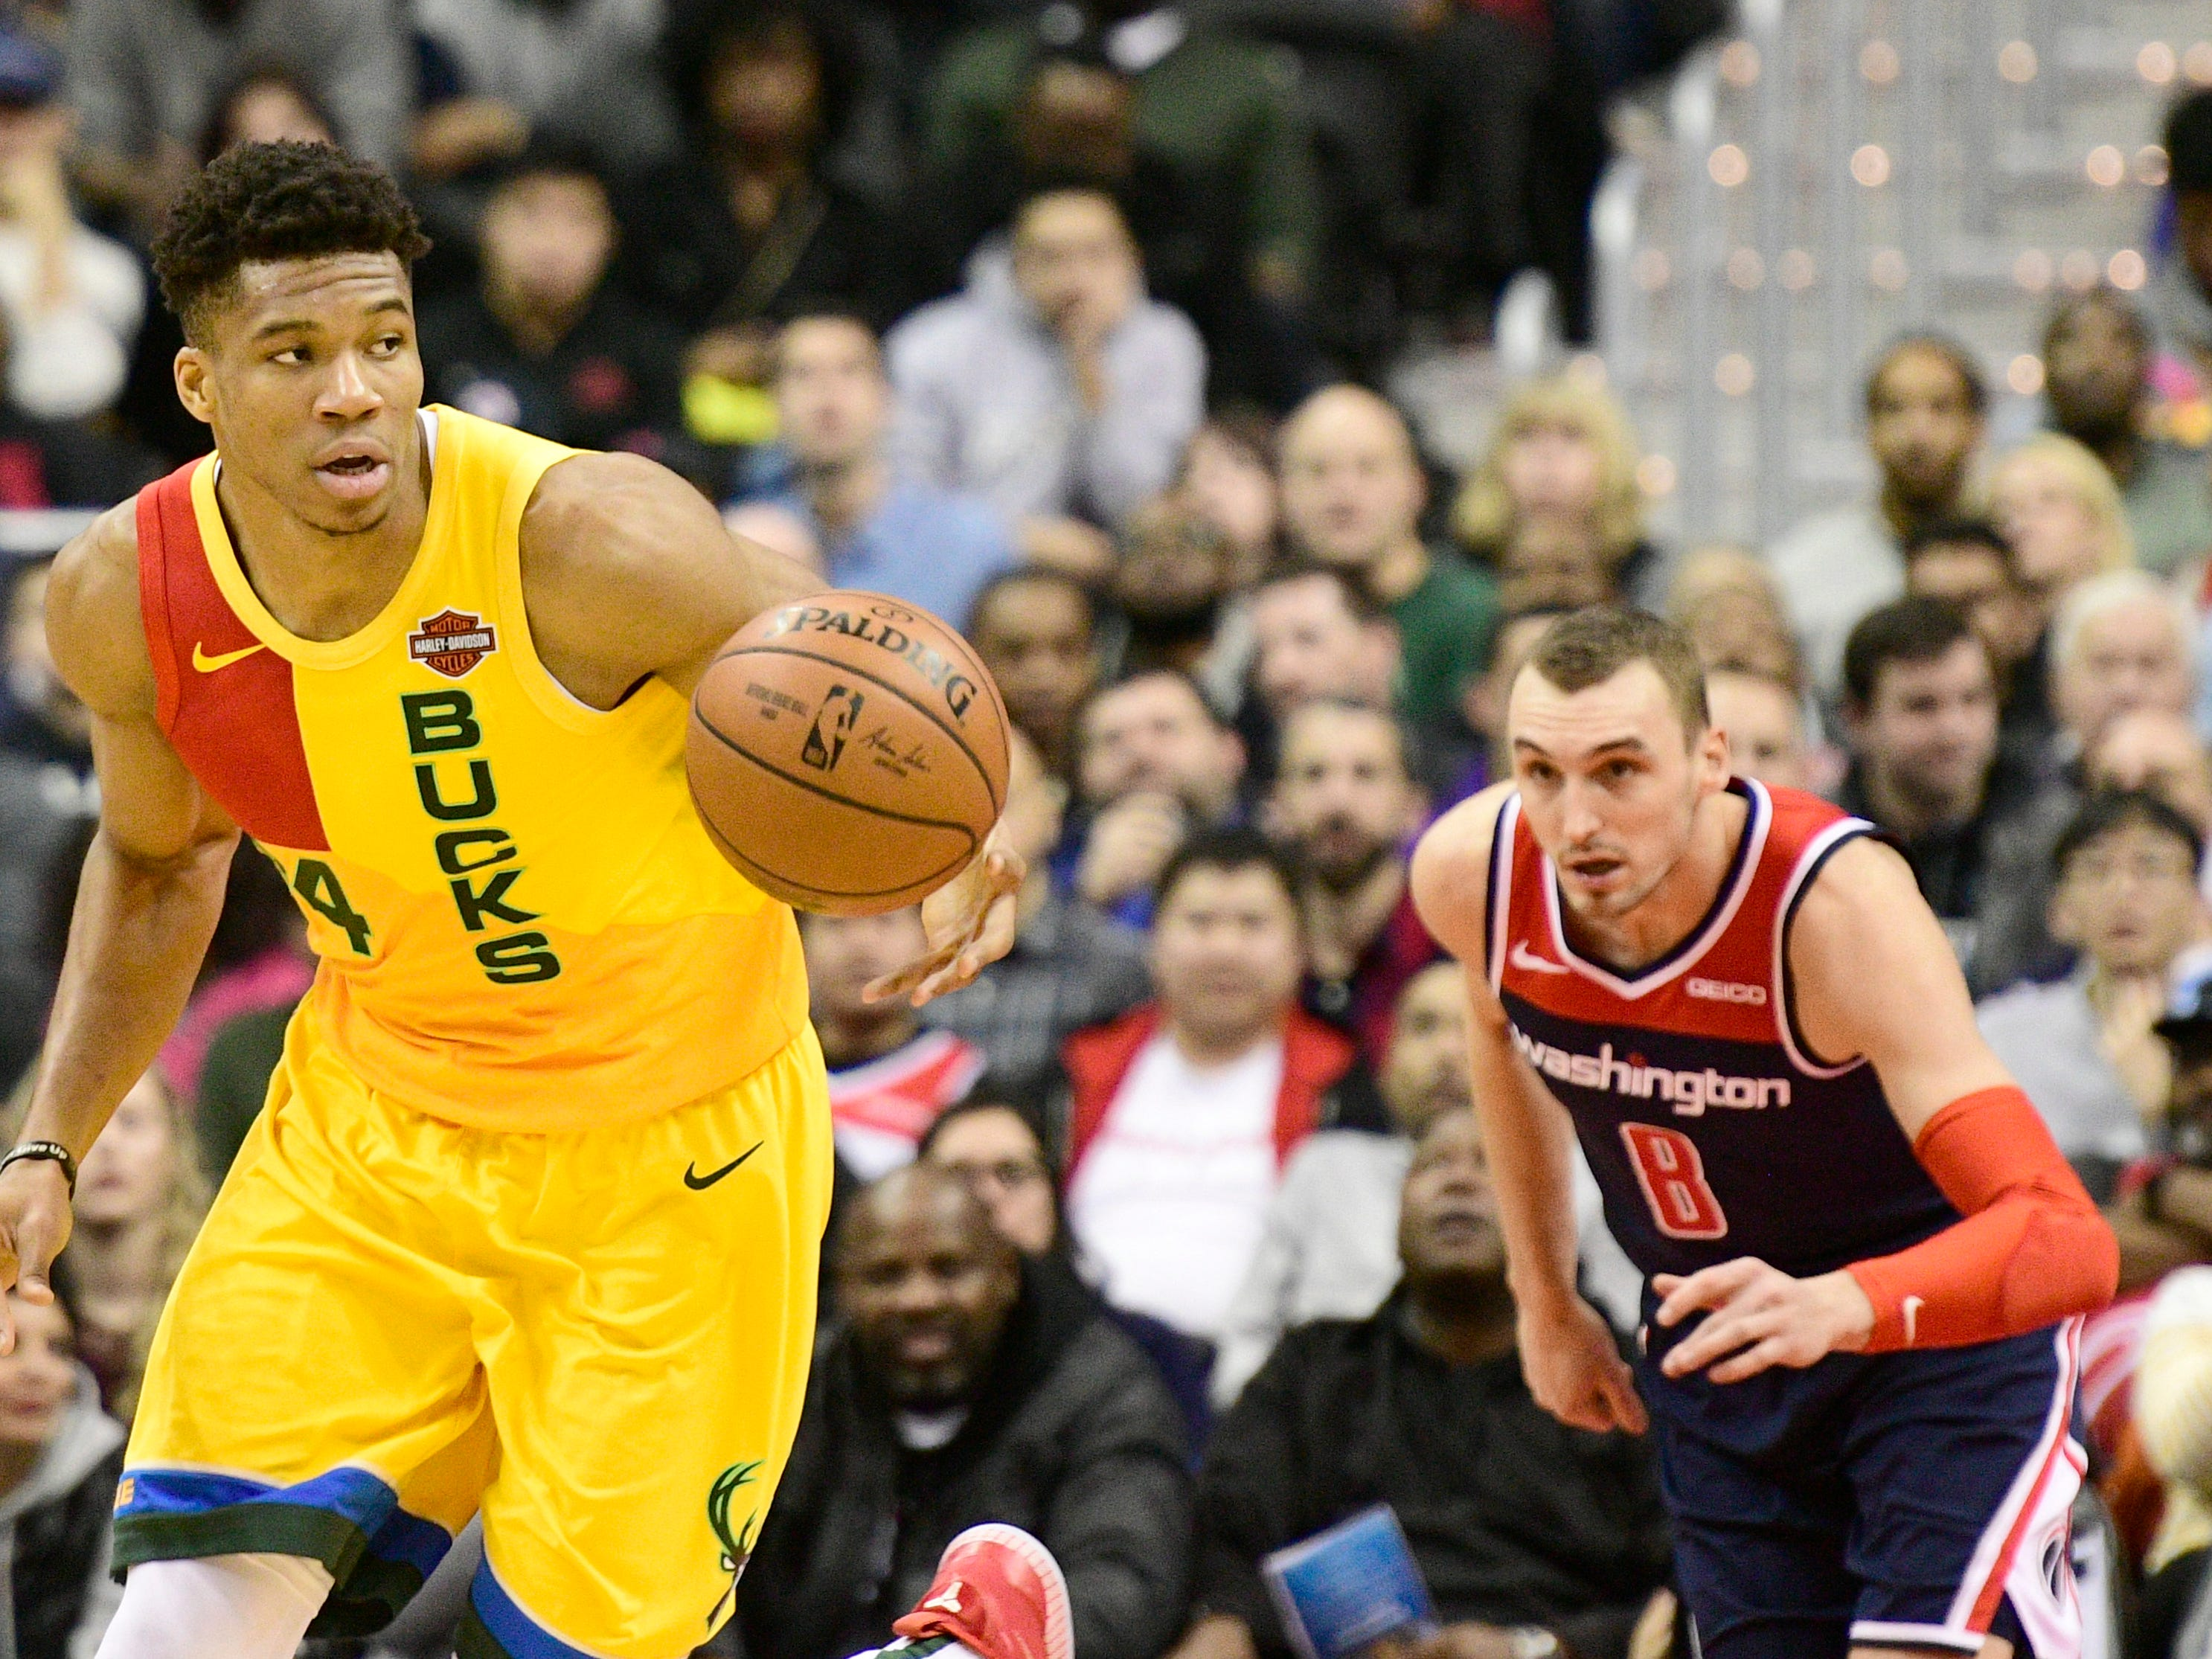 Bucks forward Giannis Antetokounmpo heads up the court with Wizards forward and former Wisconsin Badgers standout Sam Dekker trailing the play during the first quarter Saturday.